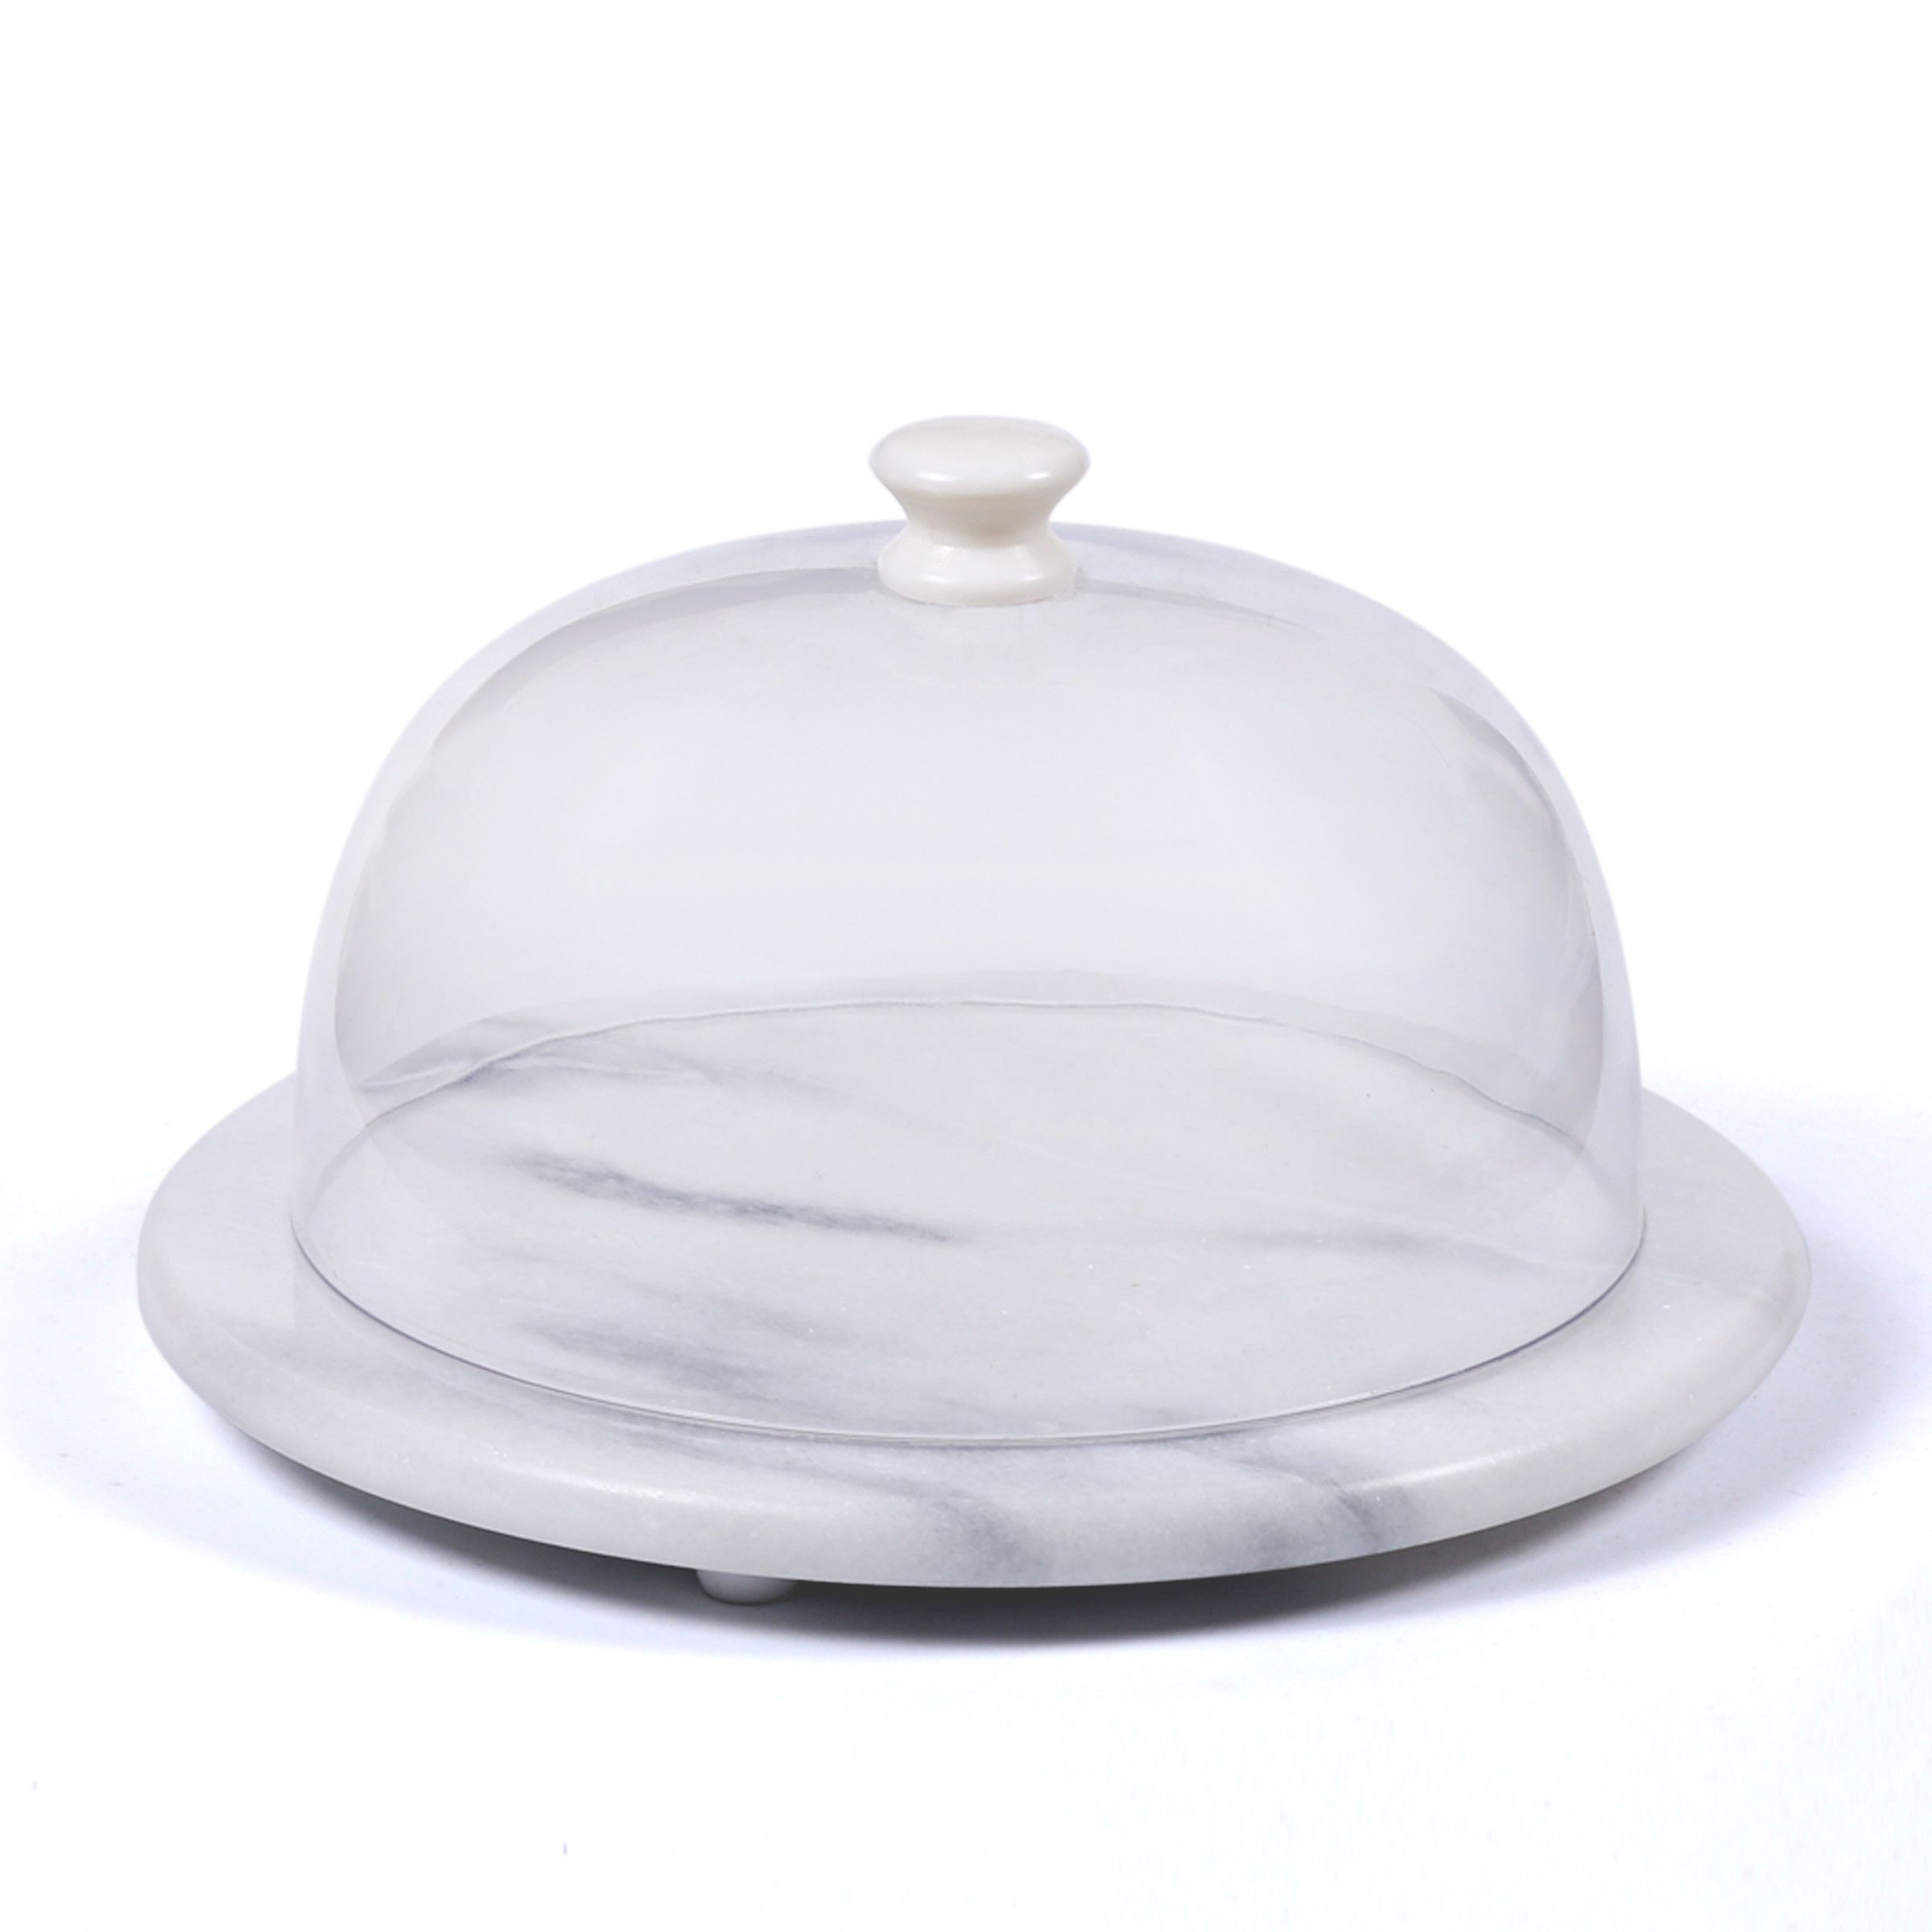 Creative home round cheese board with acrylic dome round